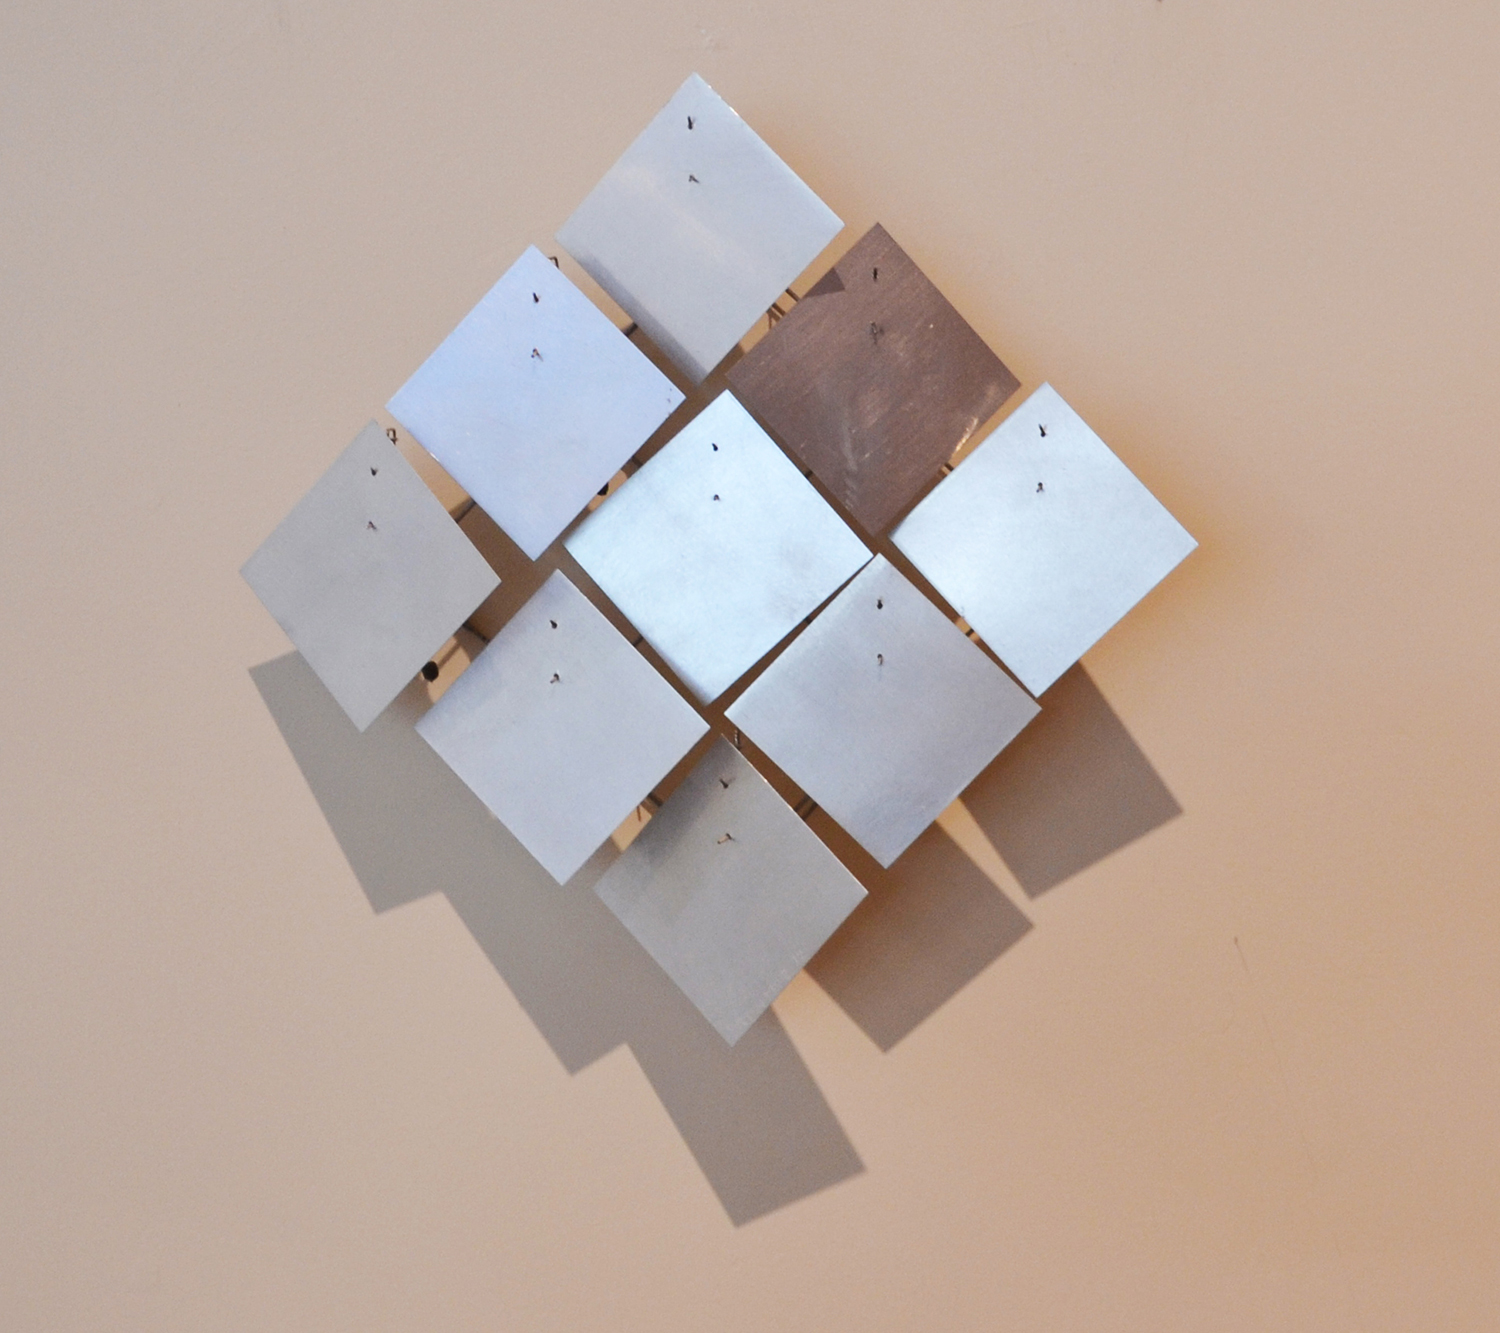 Nine Diamonds   Stainless and aluminum 15 x 15 x 3 inches